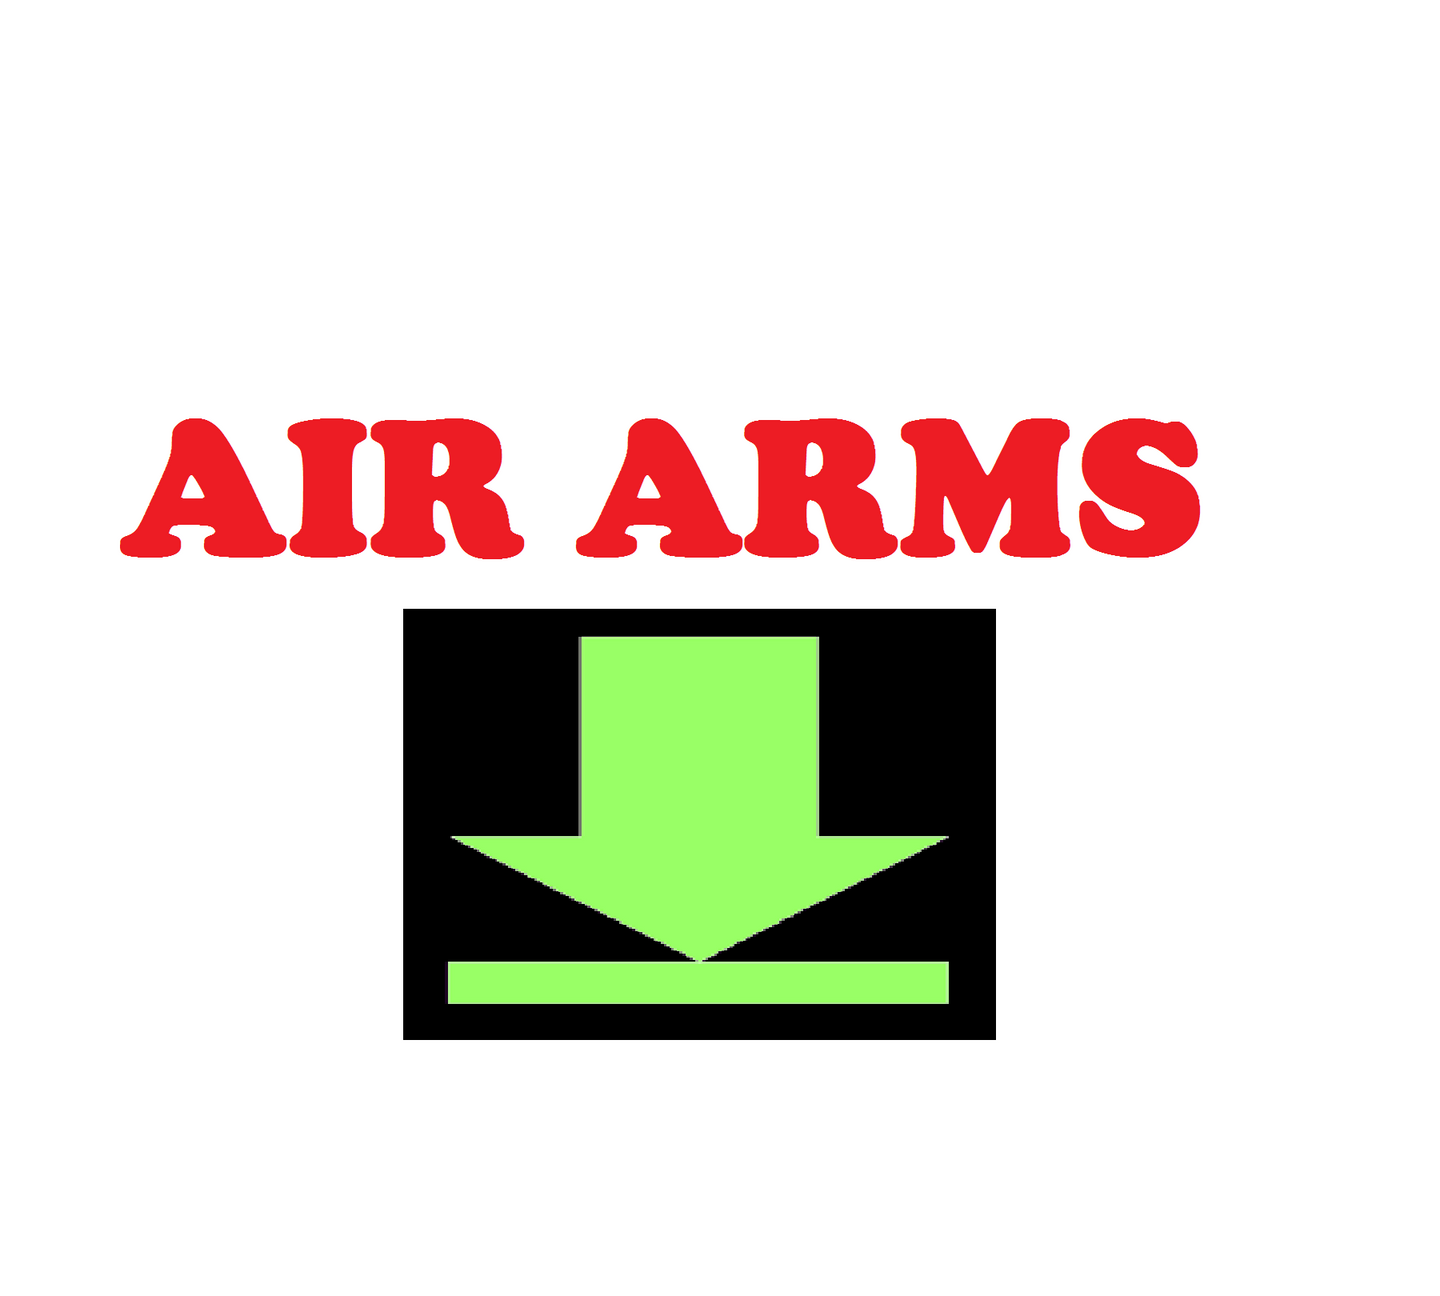 Air Arms Njr 100  Airgun Air Rifle Gun Pistol Owners Manual Instant Download #AirArms